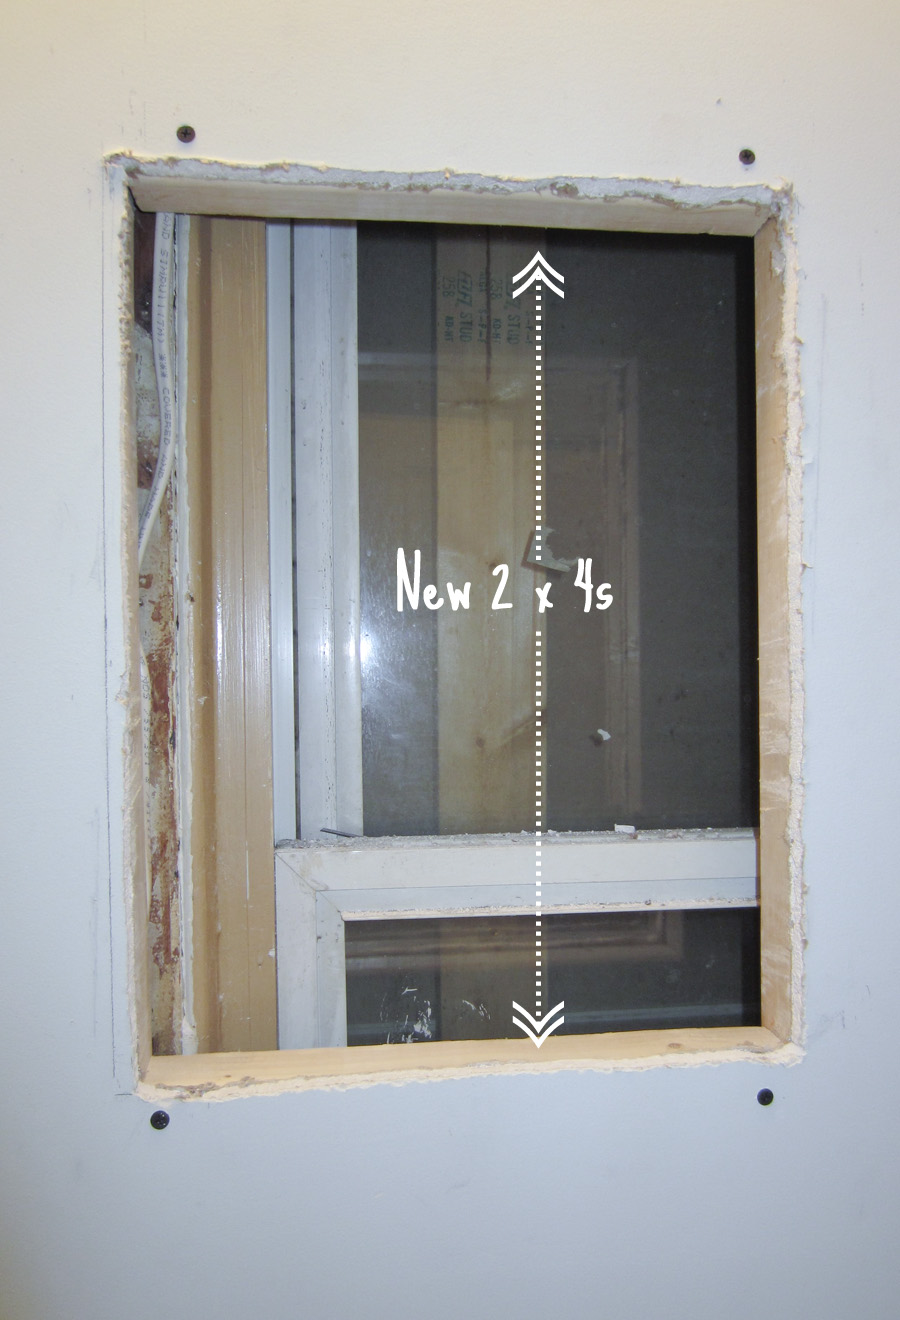 We screwed in new 2x4s at the top and the bottom of the hole